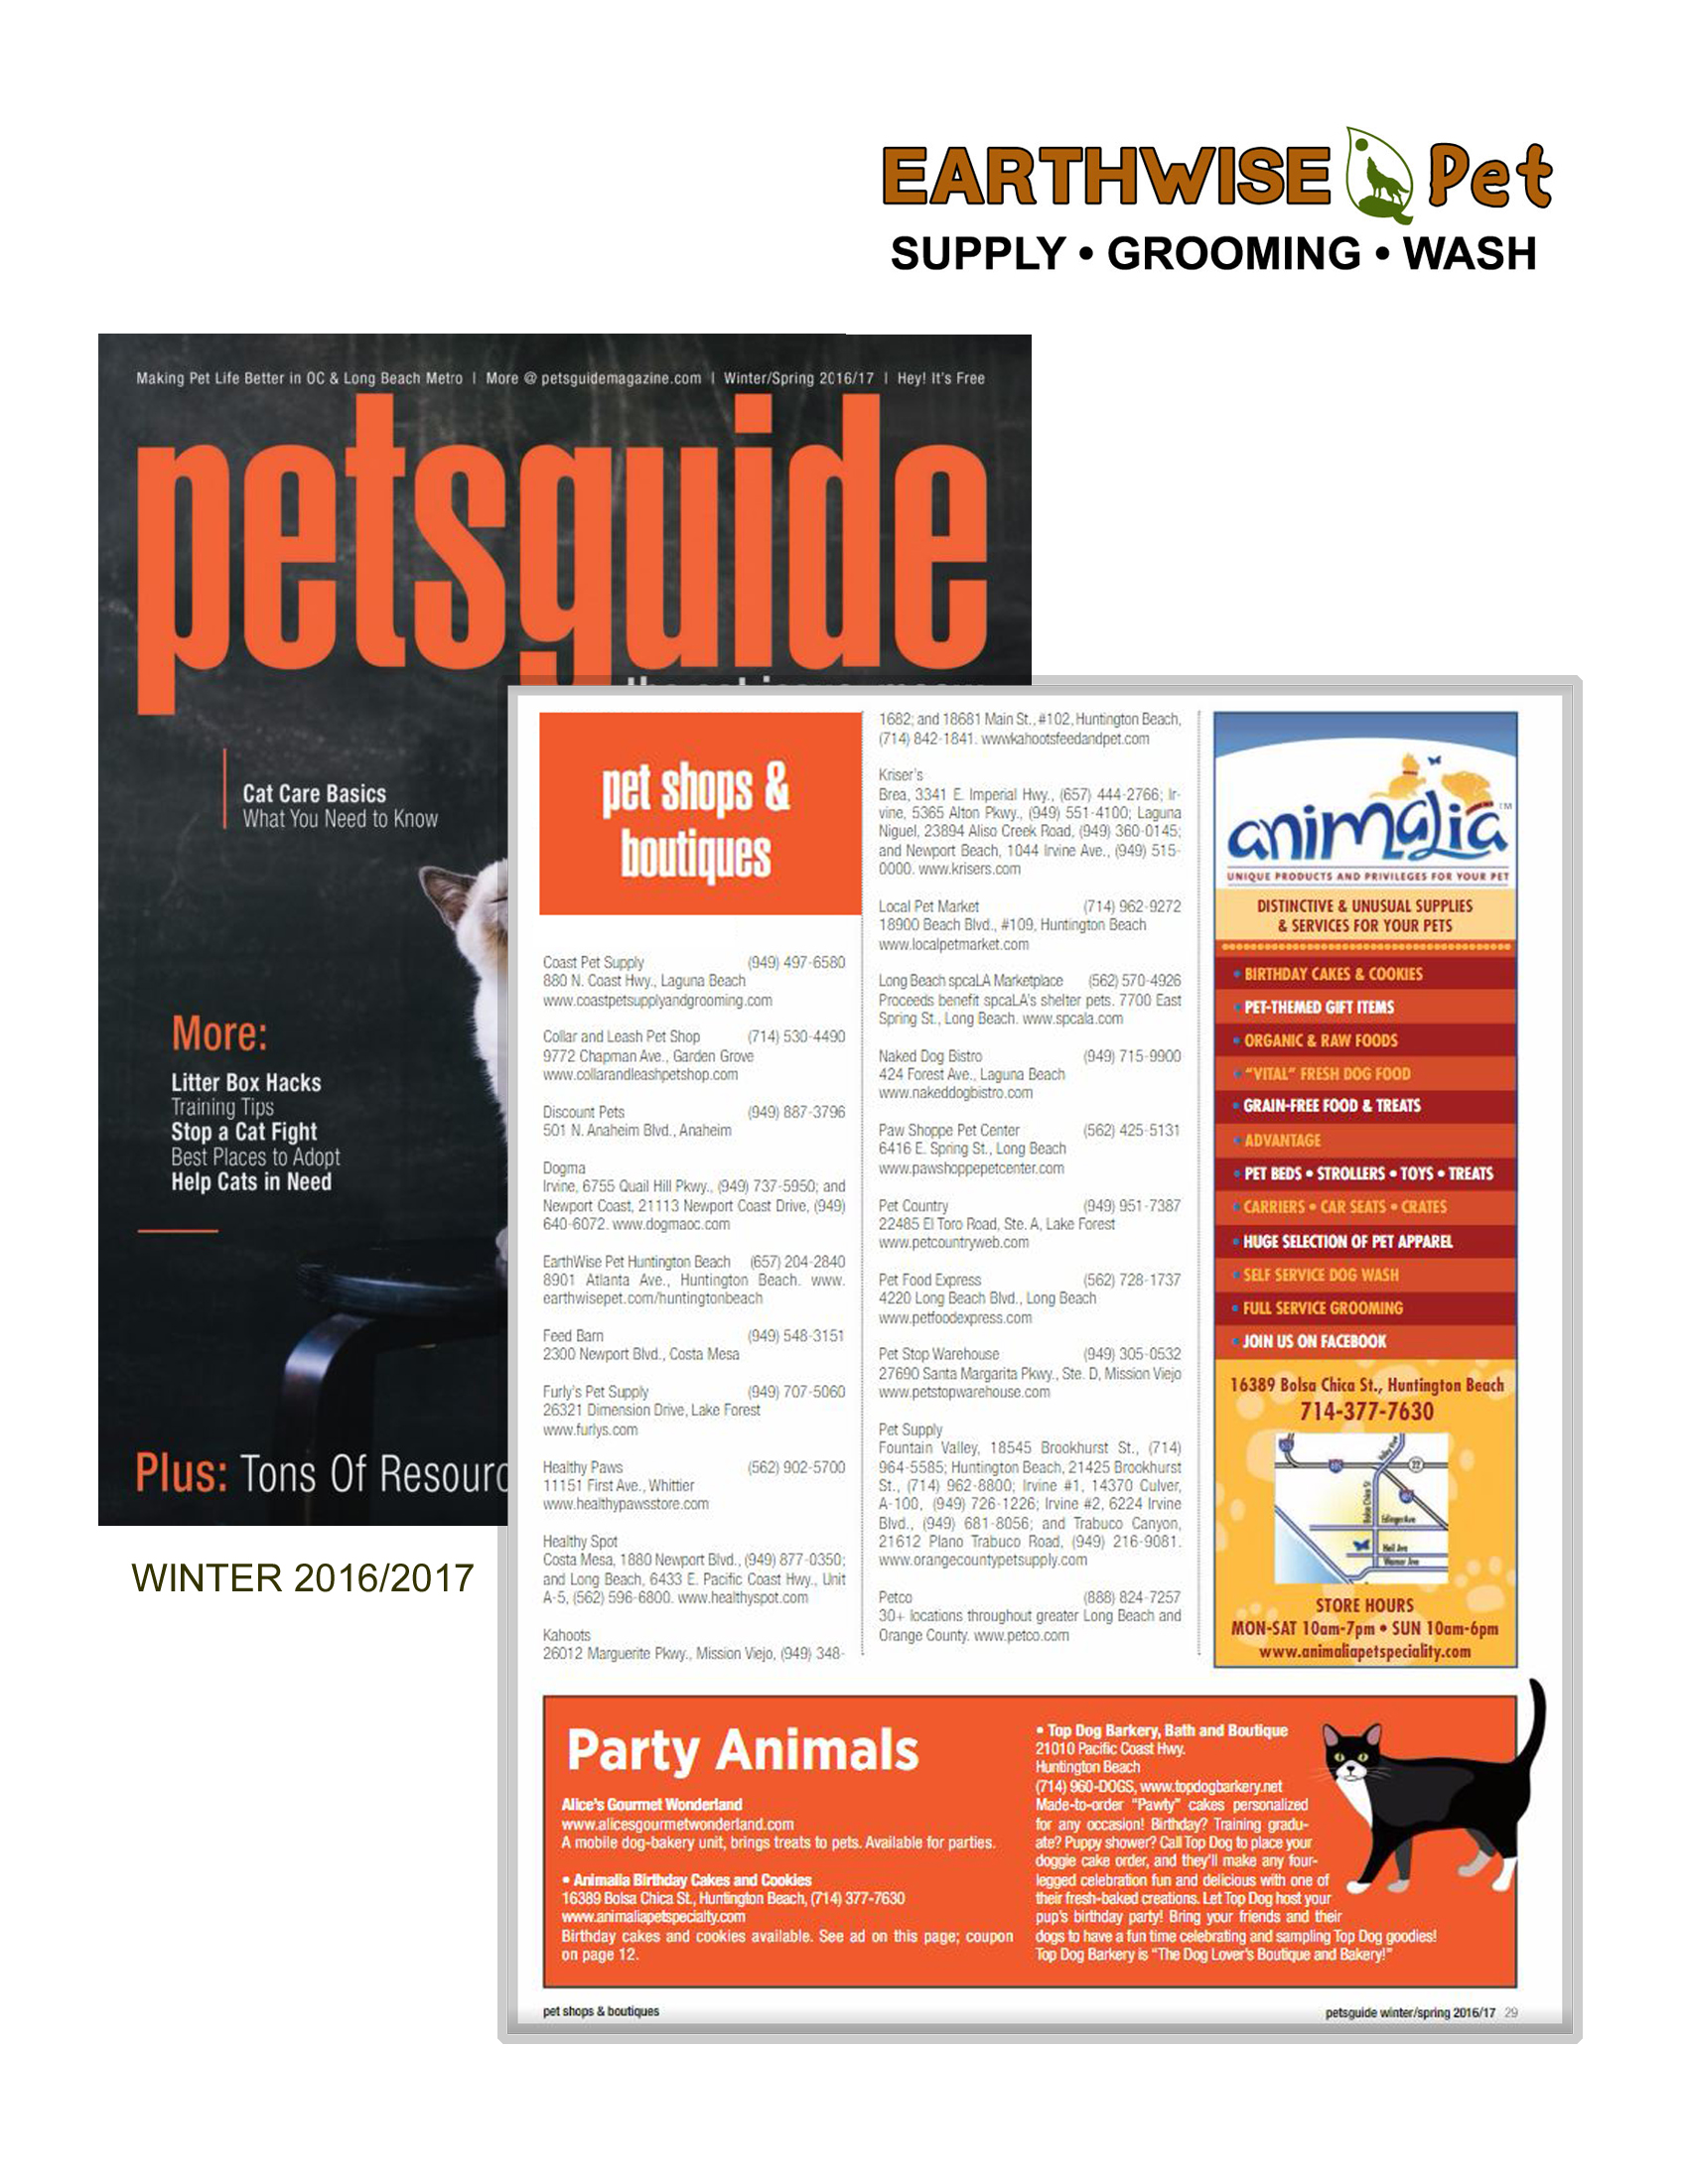 PetsGuide_Winter2016_2017.jpg